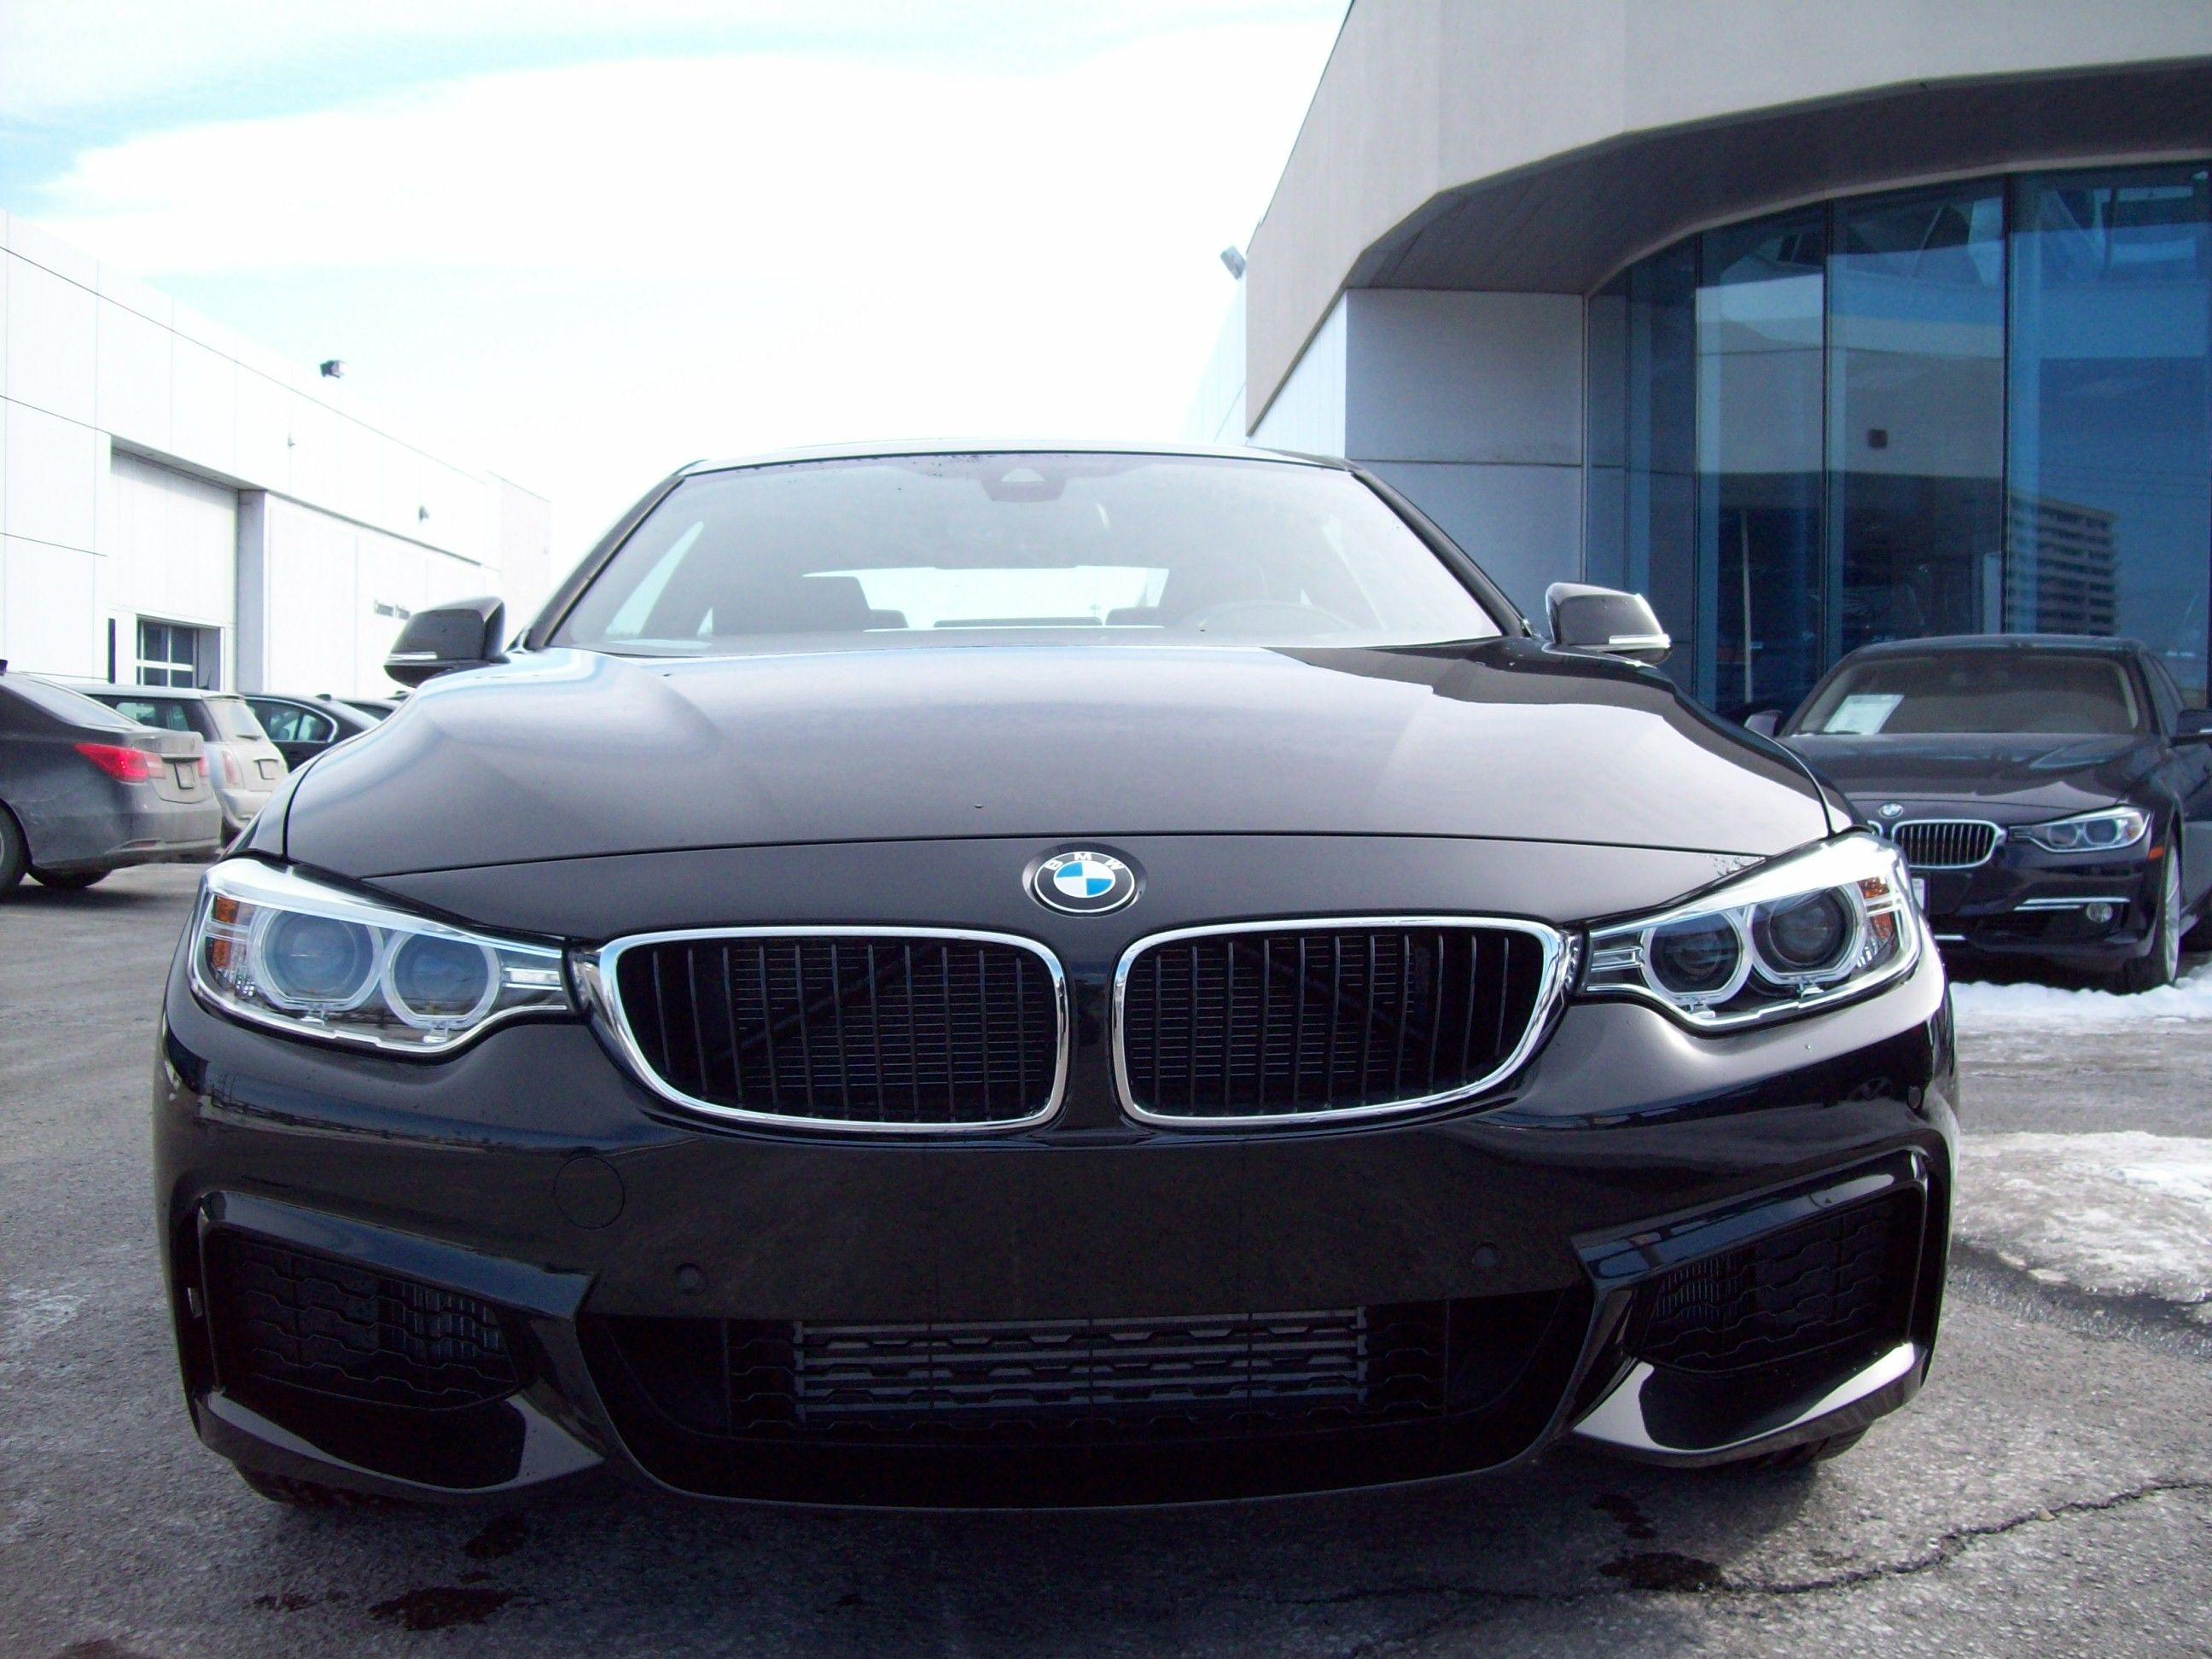 coupe silver cytnjthjd forums sport glacier m coral php showthread bmw red